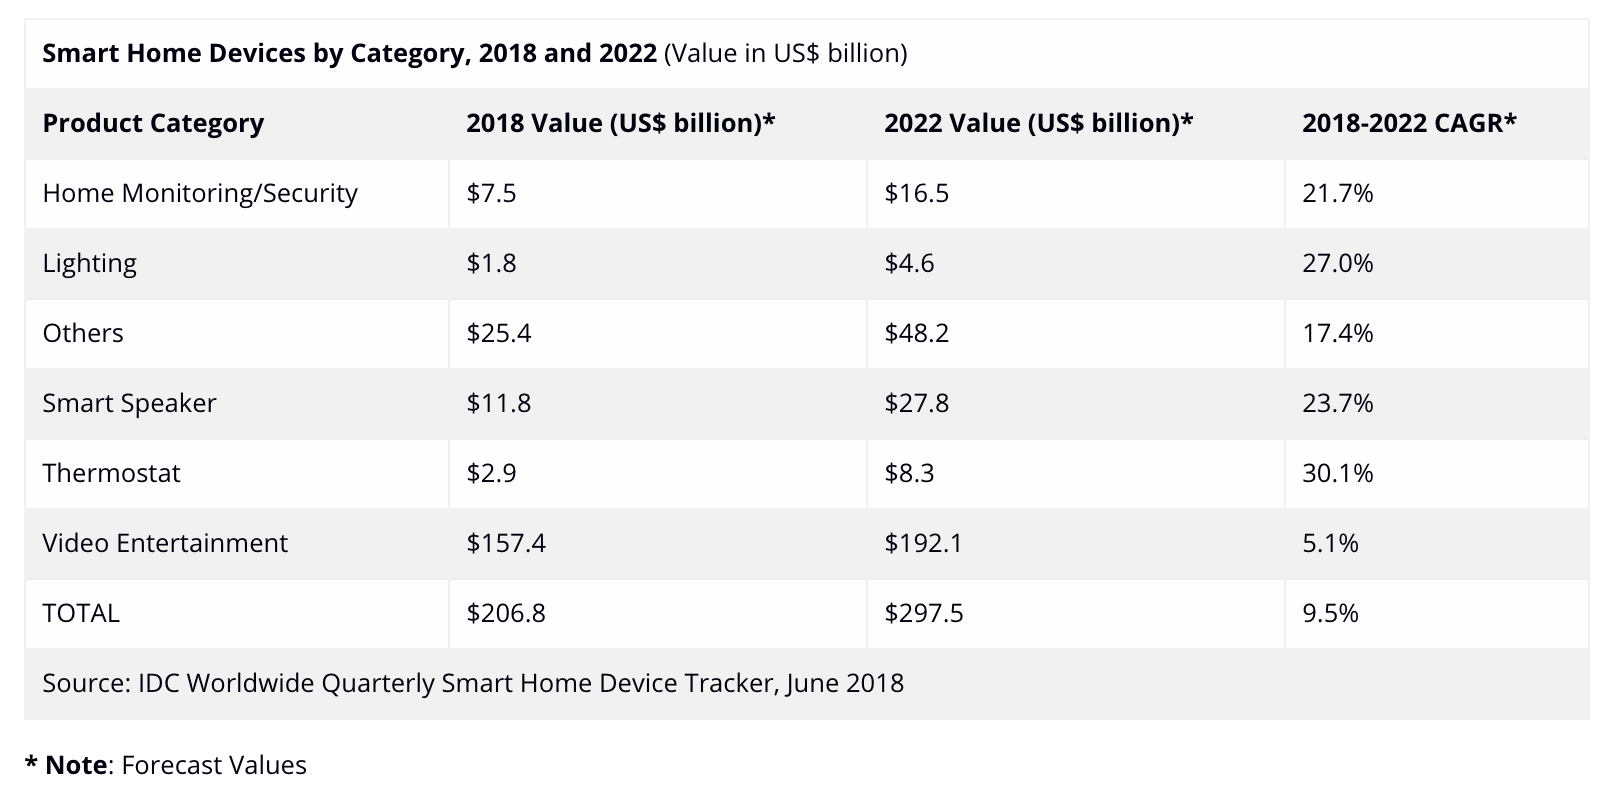 Global Smart Home Market by Smart Home Category